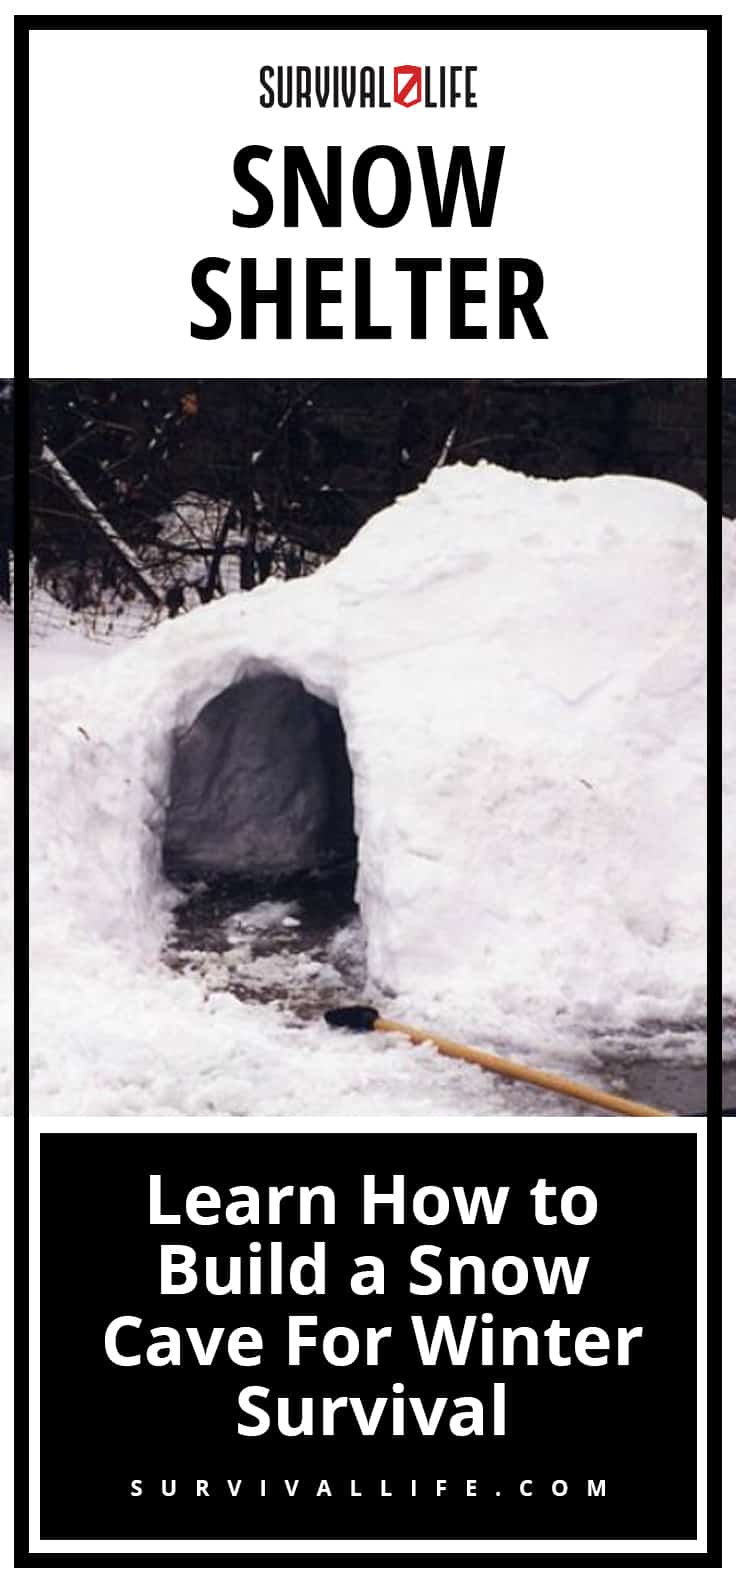 Snow Shelter: Learn How to Build a Snow Cave For Winter Survival